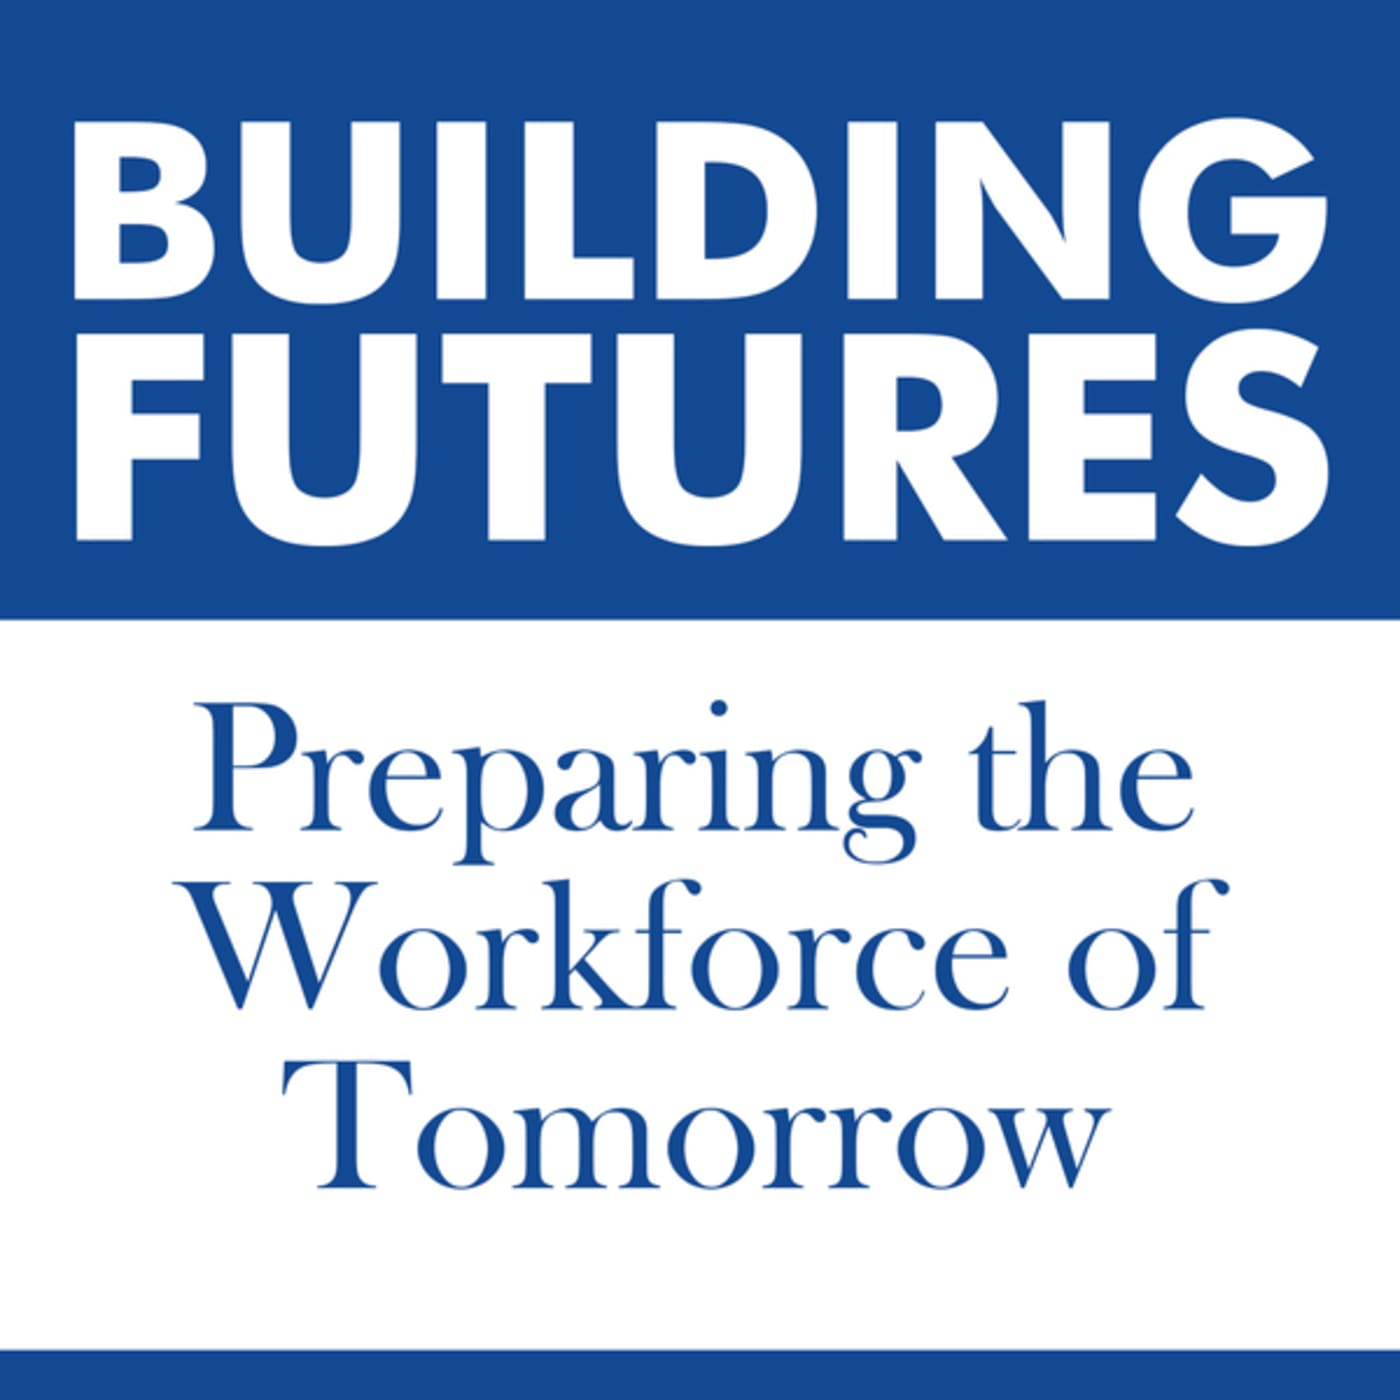 Building Futures: Preparing the Workforce of Tomorrow